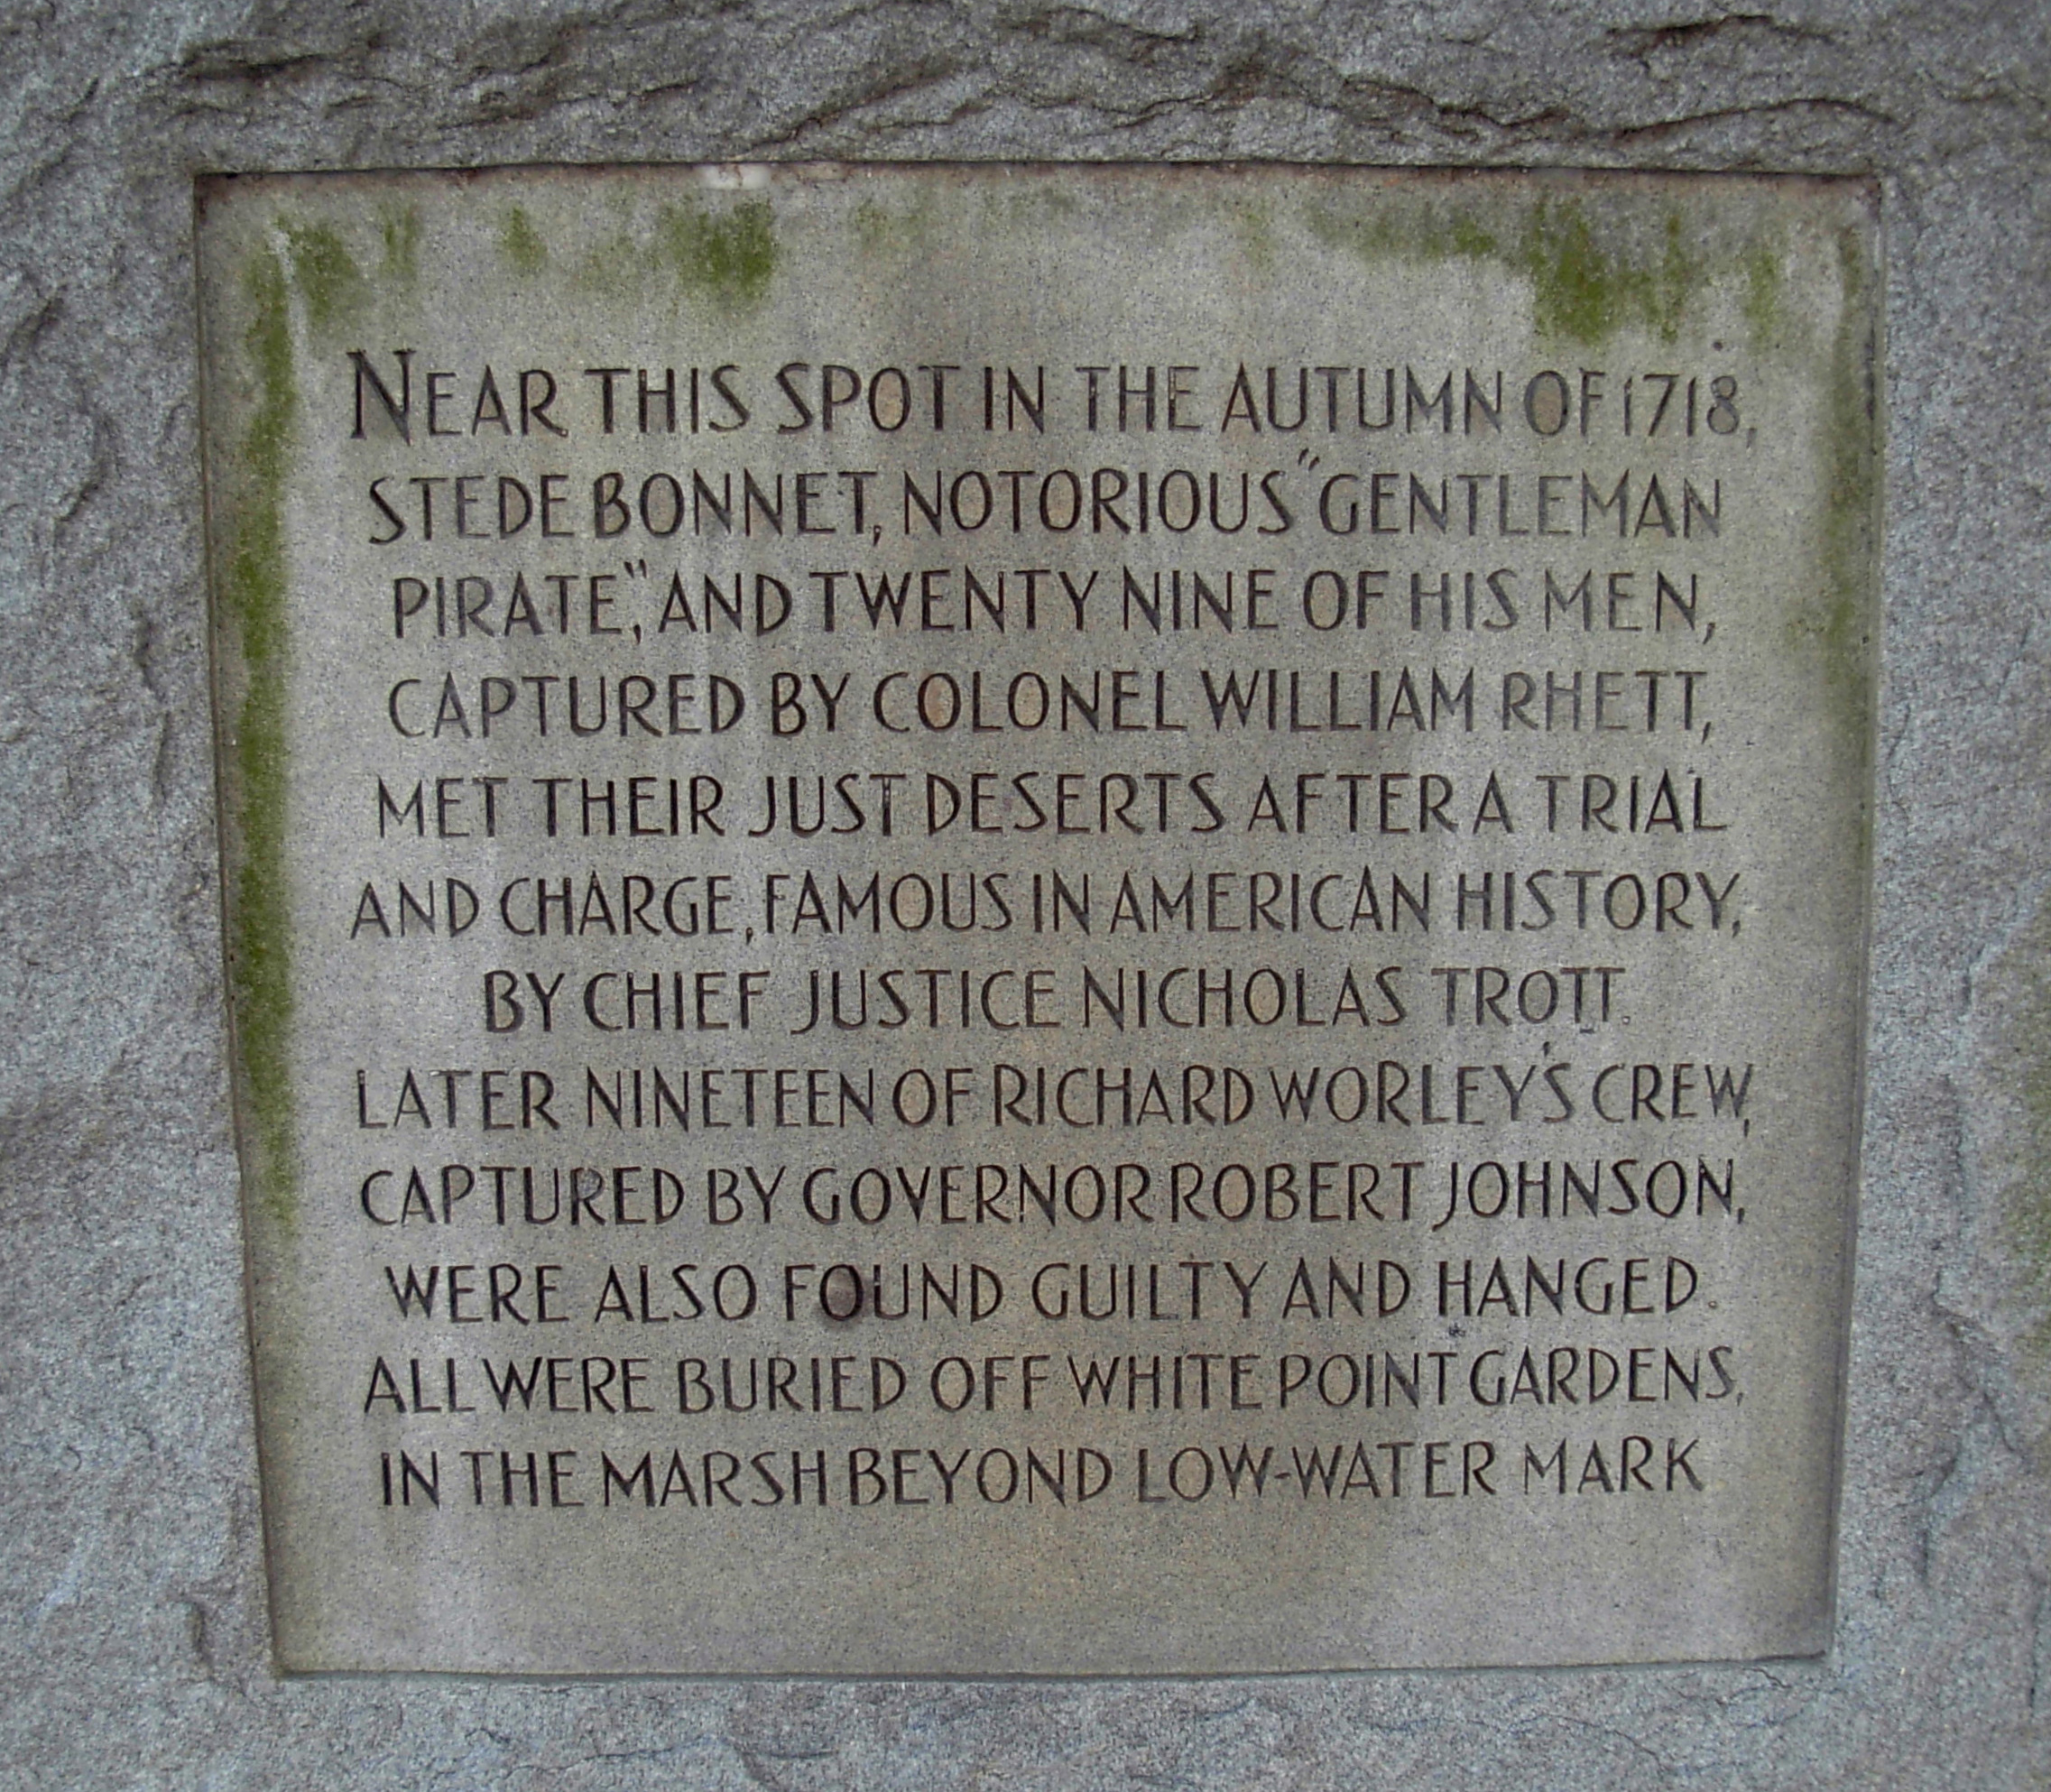 haunted White Point Gardens Battery Charleston South Carolina pirate executions Stede Bonnet 1718 Southern ghosts